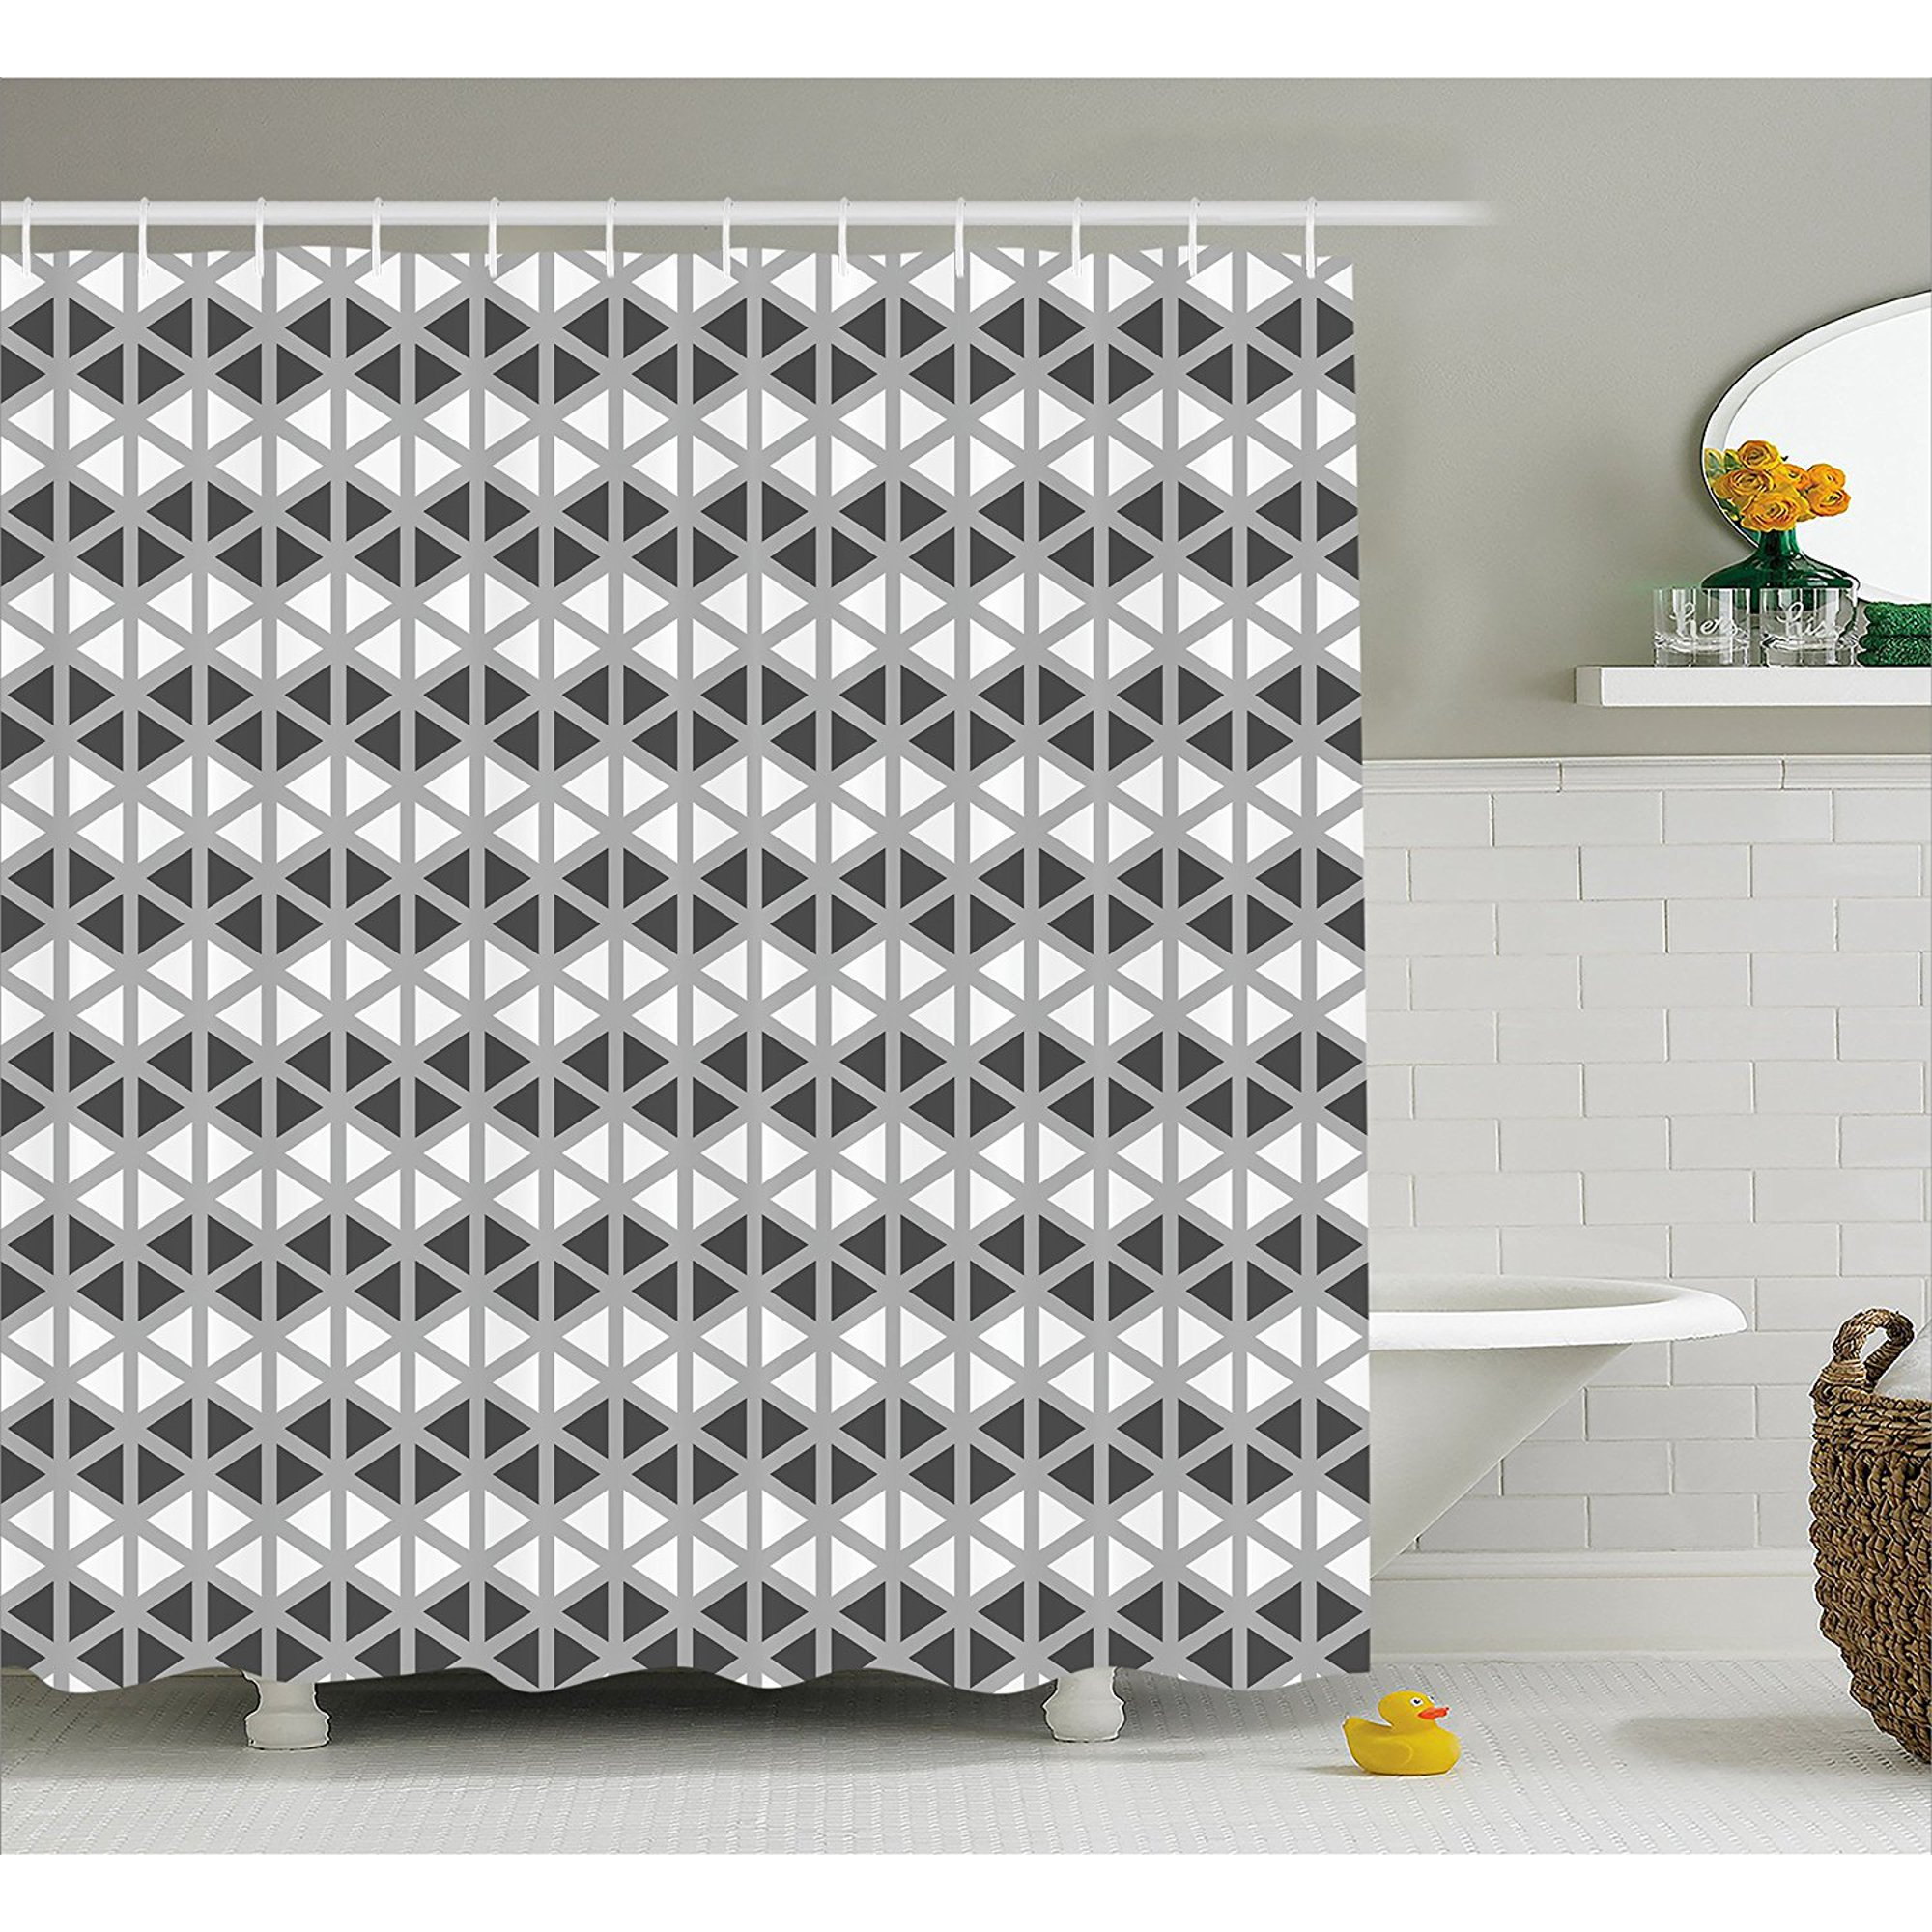 Grey Decor Shower Curtain By Triangle Sides Regular Polygon Shapes With Symmetrical Lines Dimensional Design Image Fabric Bathroom Decor Set With Hooks 84 Inches Extra Long White By Ambesonne Walmart Canada